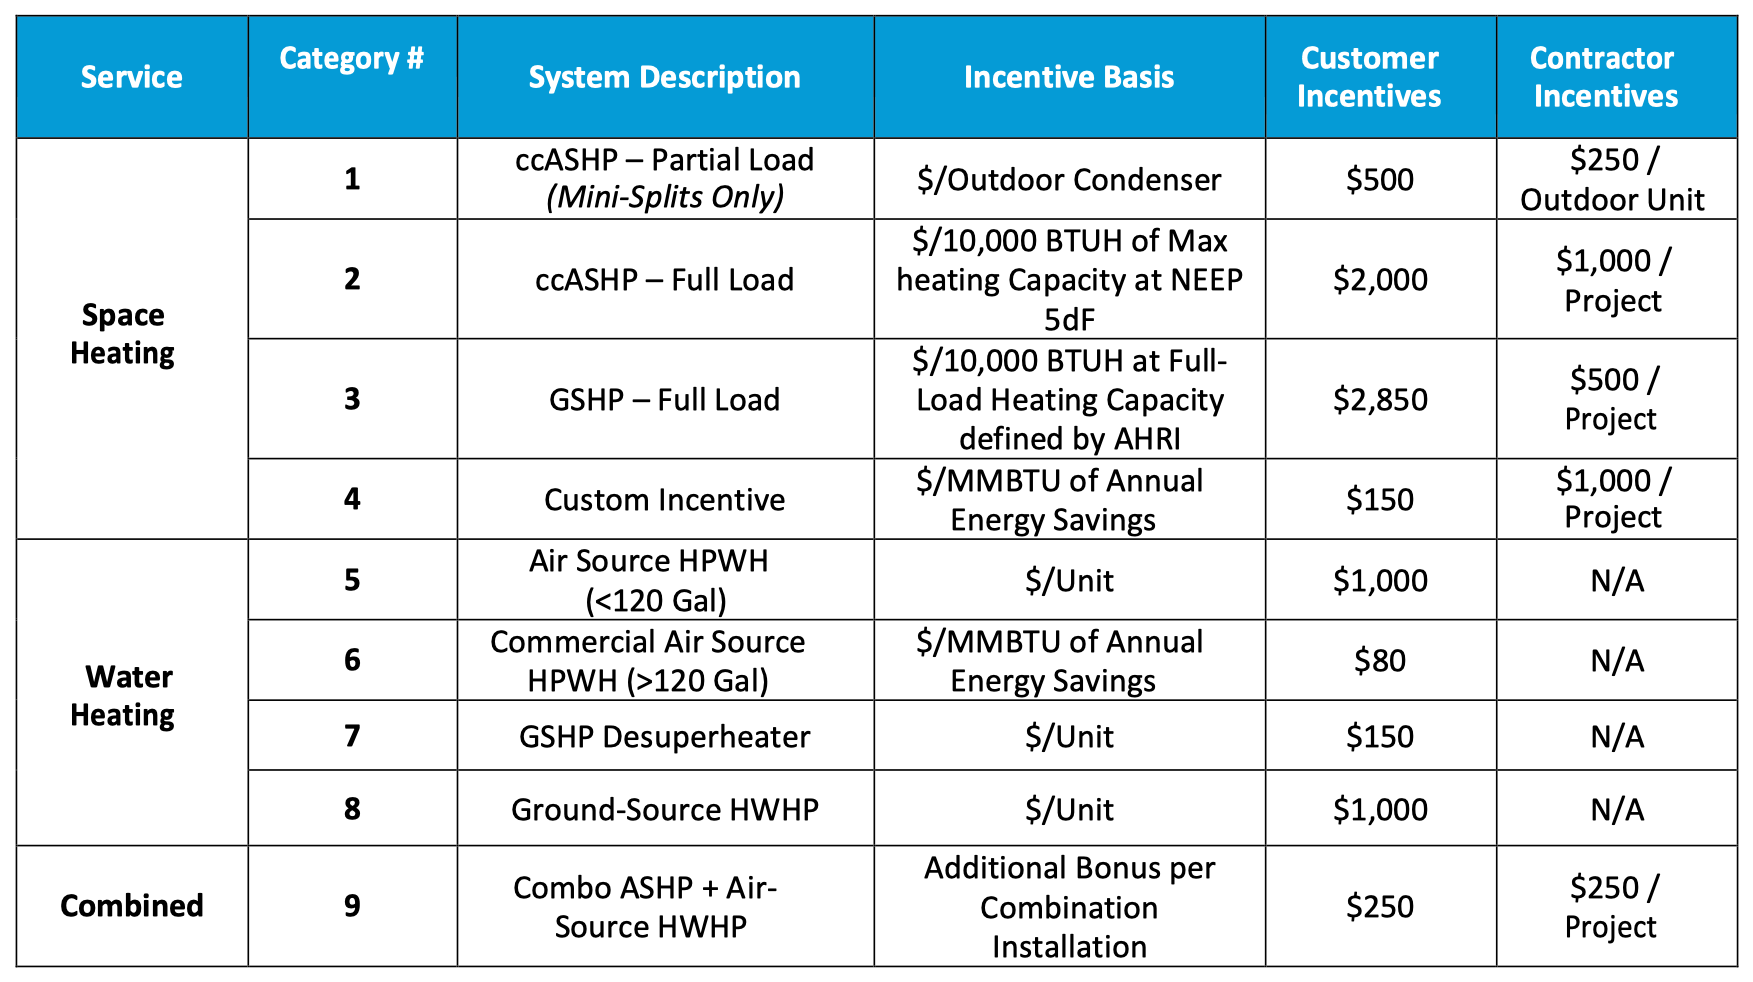 NYS chart explaining heat-pump incentive service options, system descriptions and amounts available